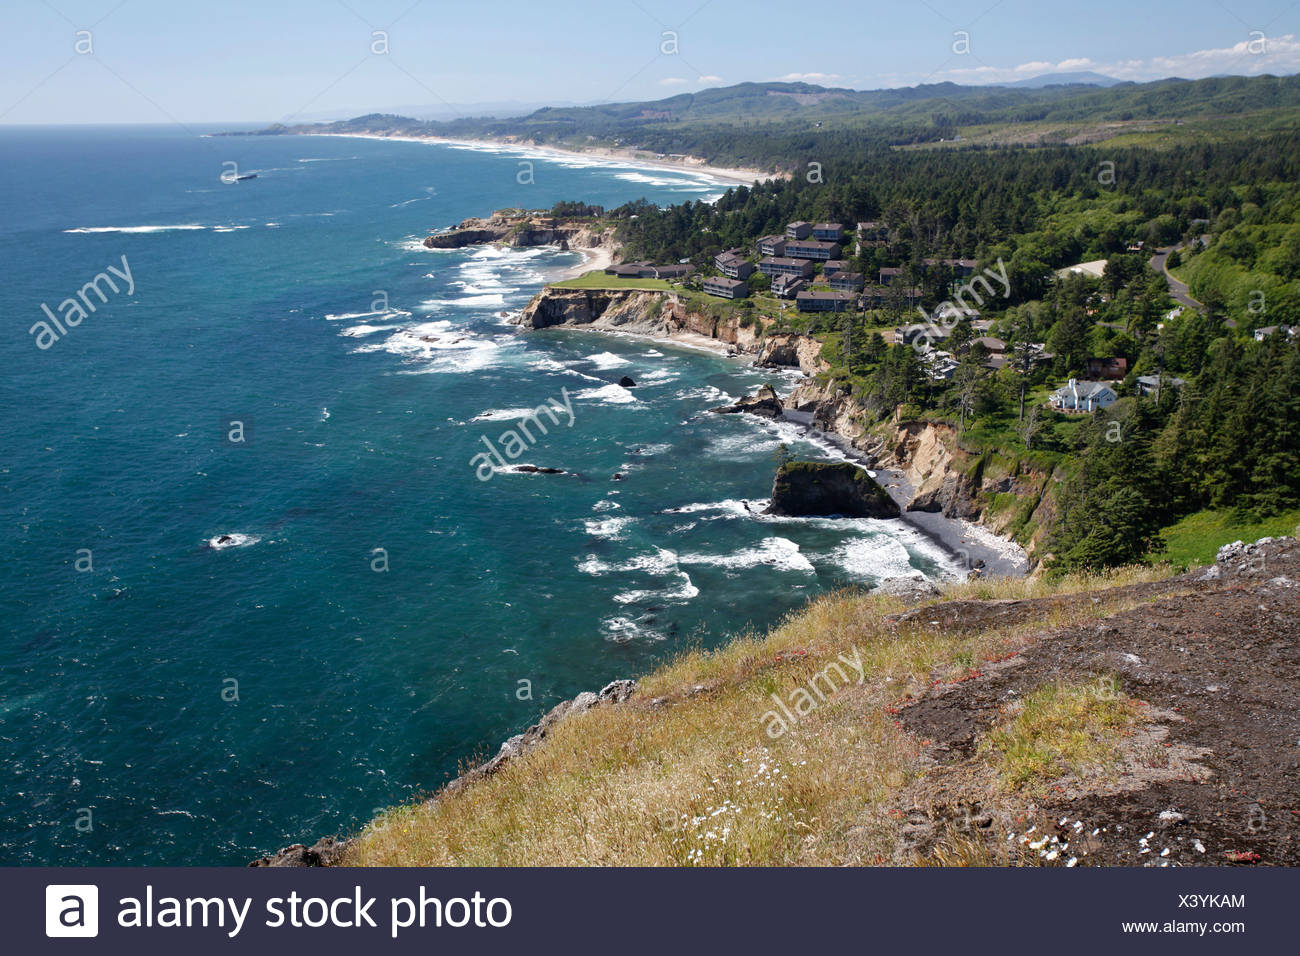 Devils Punchbowl, Cape Foul Weather, Oregon, USA - Stock Image